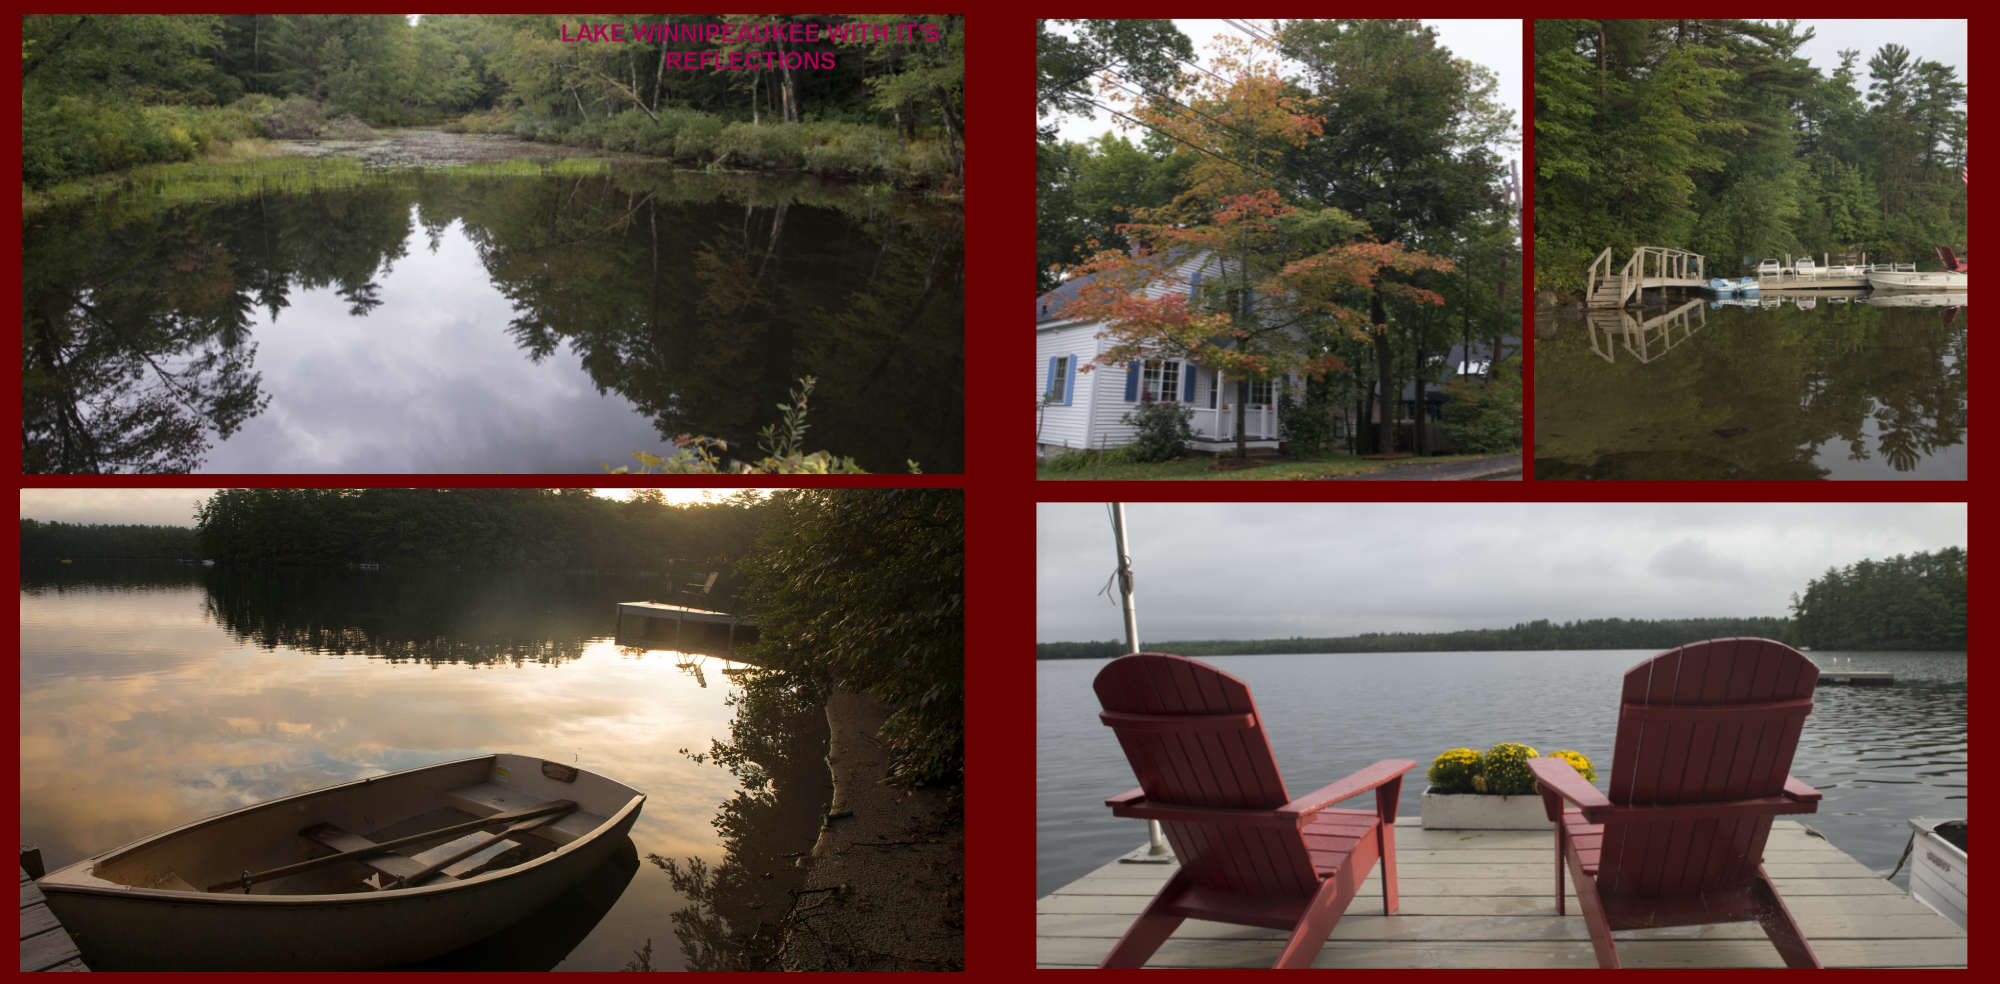 Fall in New-England Album - Page 40: Reflections in Lake Winnipesaukee - Page 41: Peace and quiet on the waters